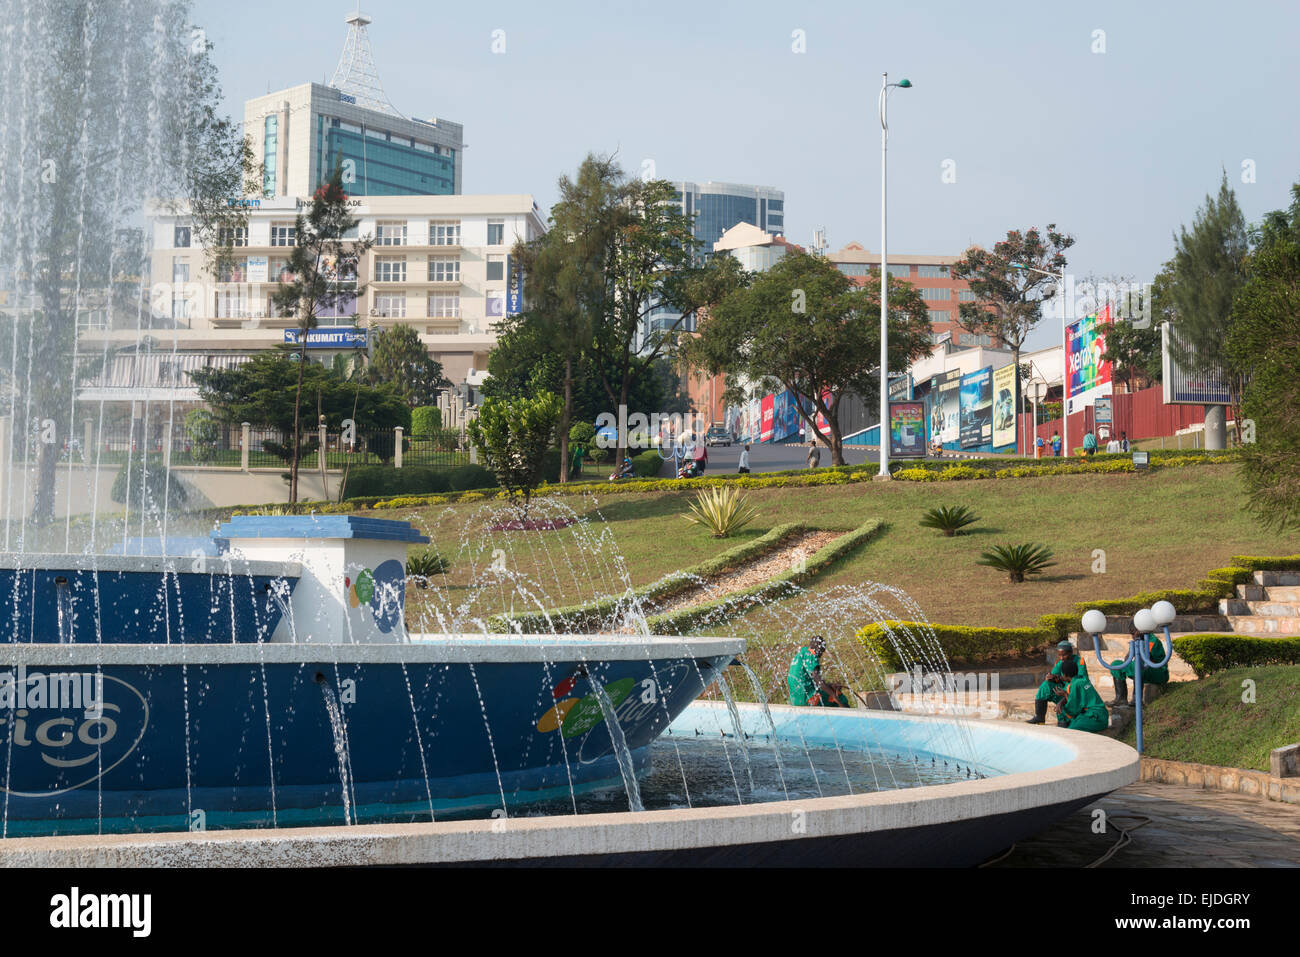 Kigali city center. Place de l' Unite Nationale. Rwanda - Stock Image